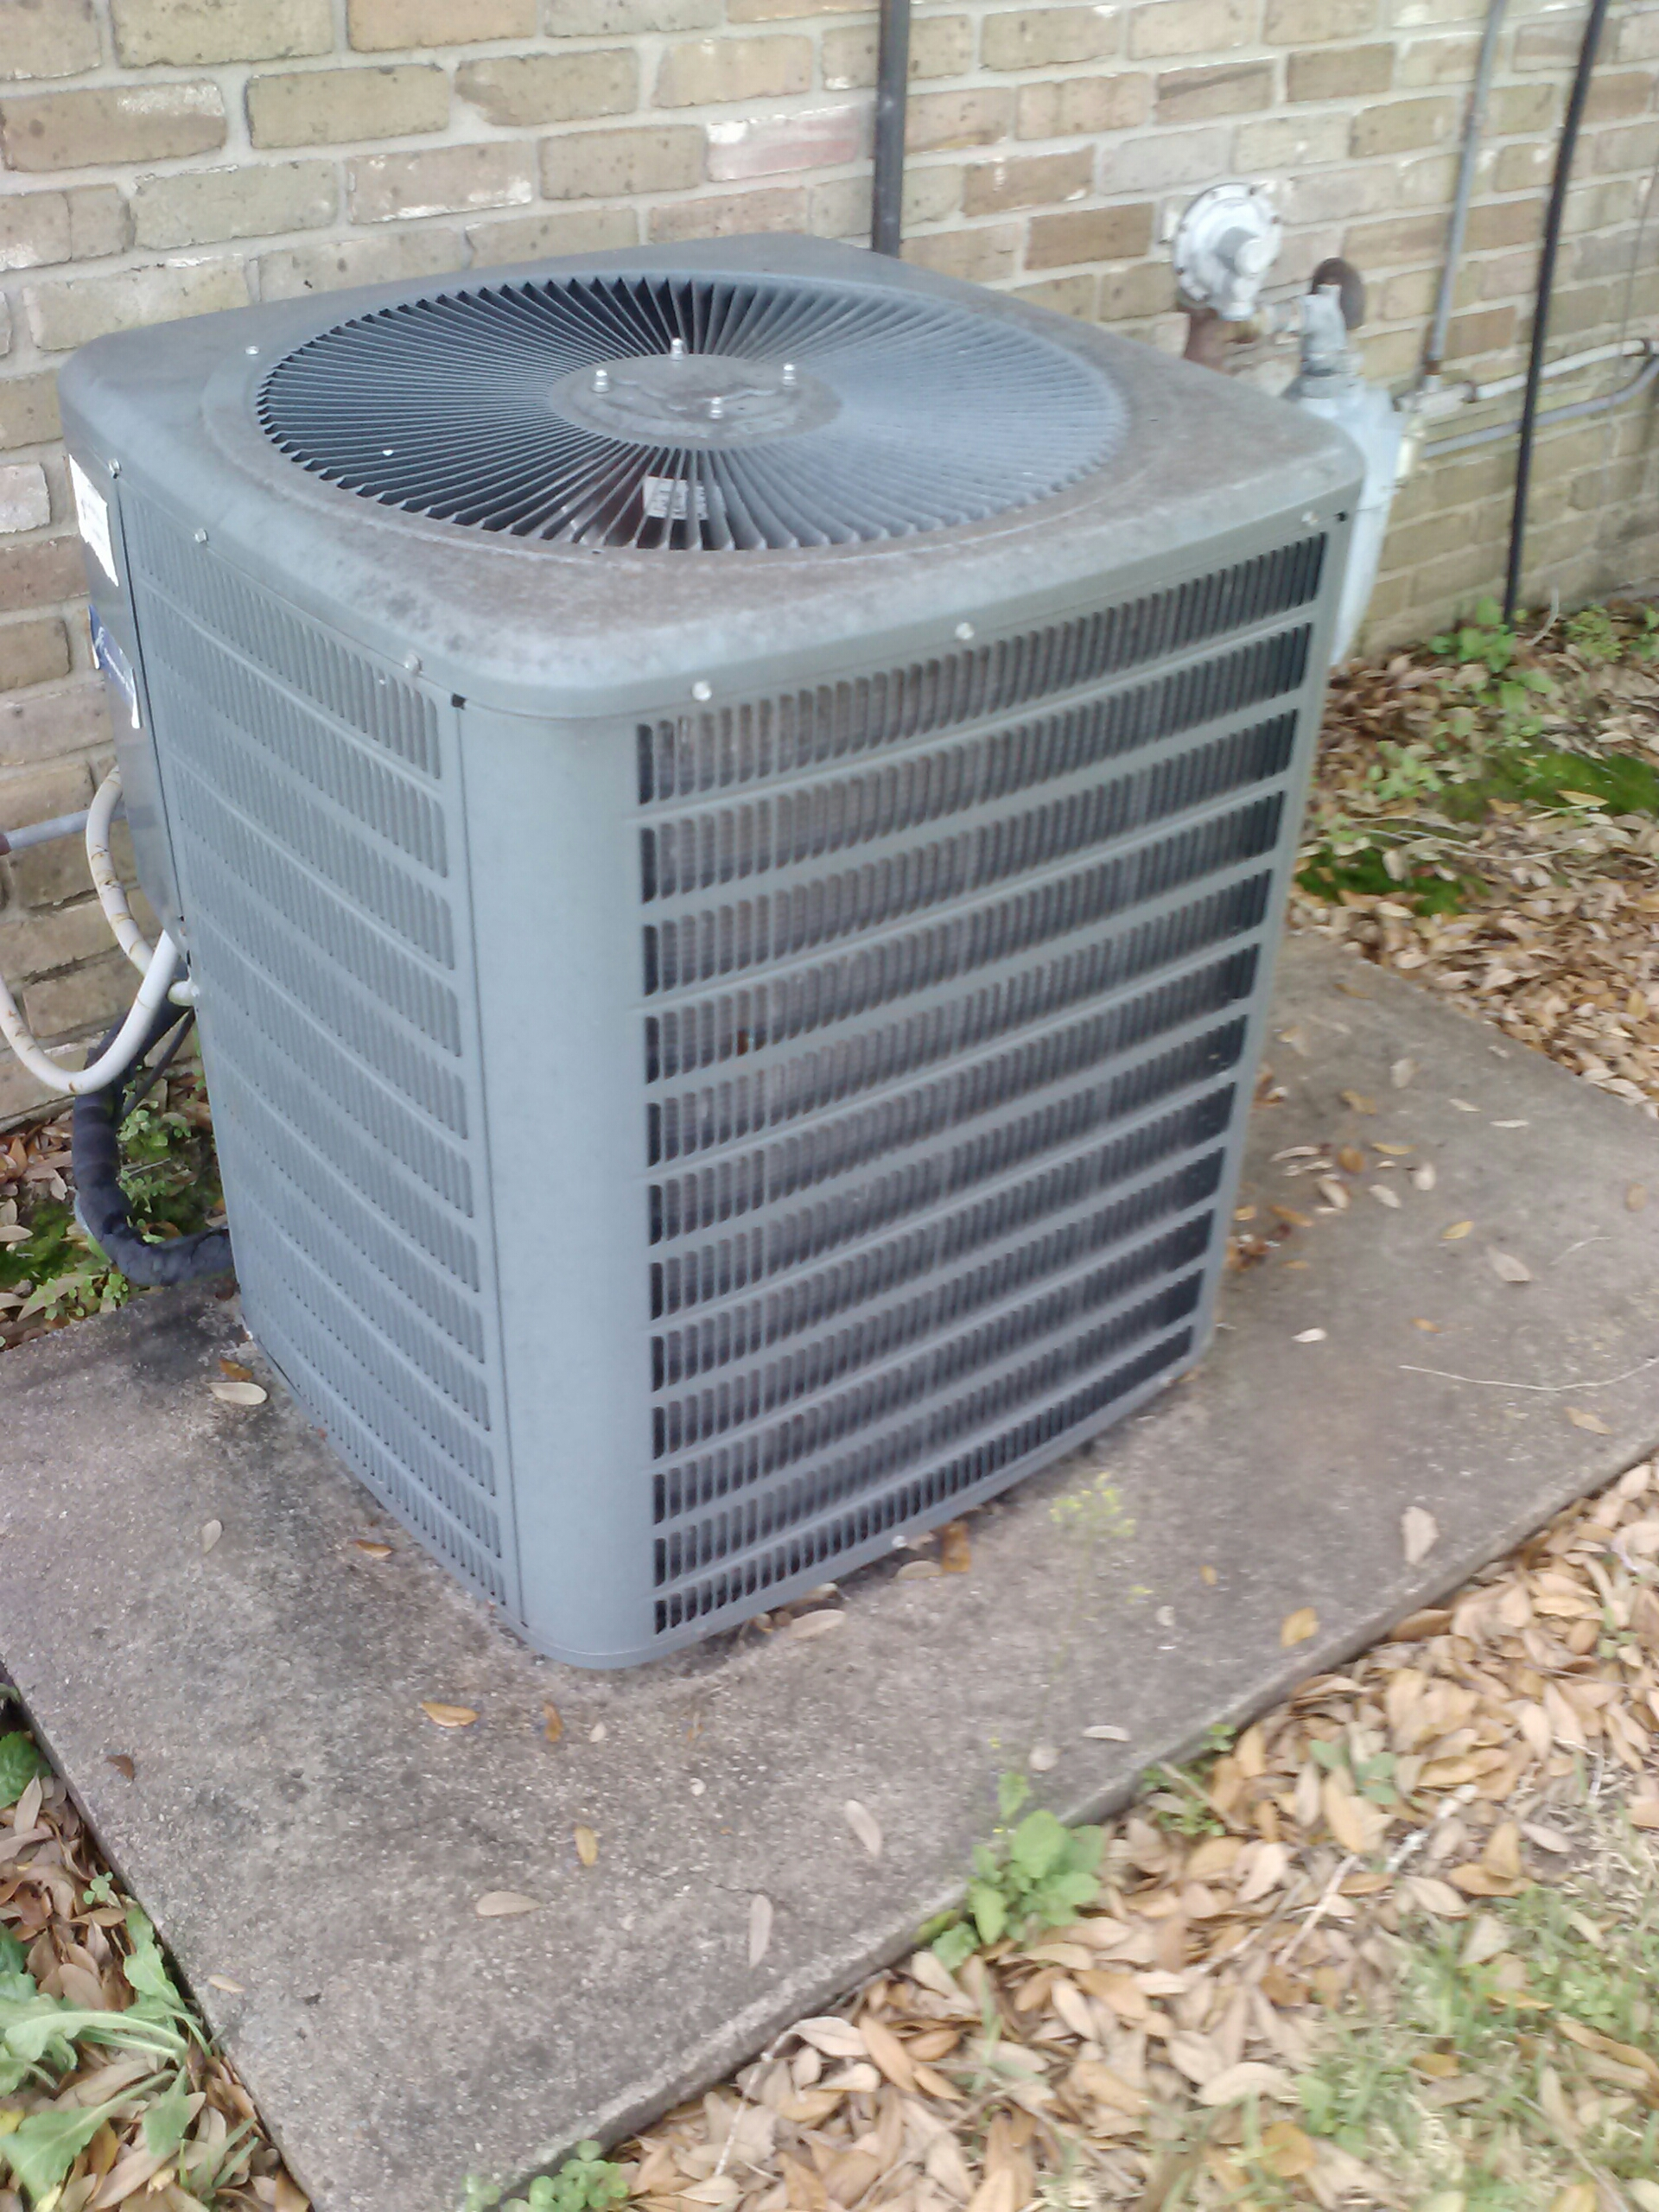 Rosedale, LA - Check system for noise in air conditioner system.